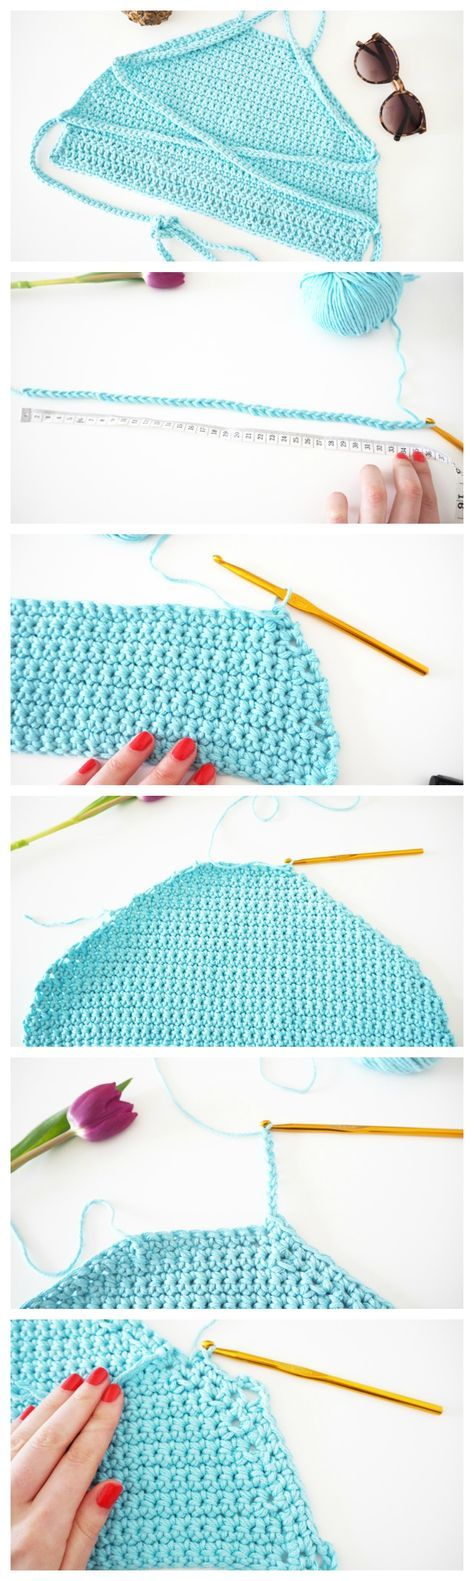 How To Crochet Festival Top DIY | Tutorial | Made Up Style | Crochet ...